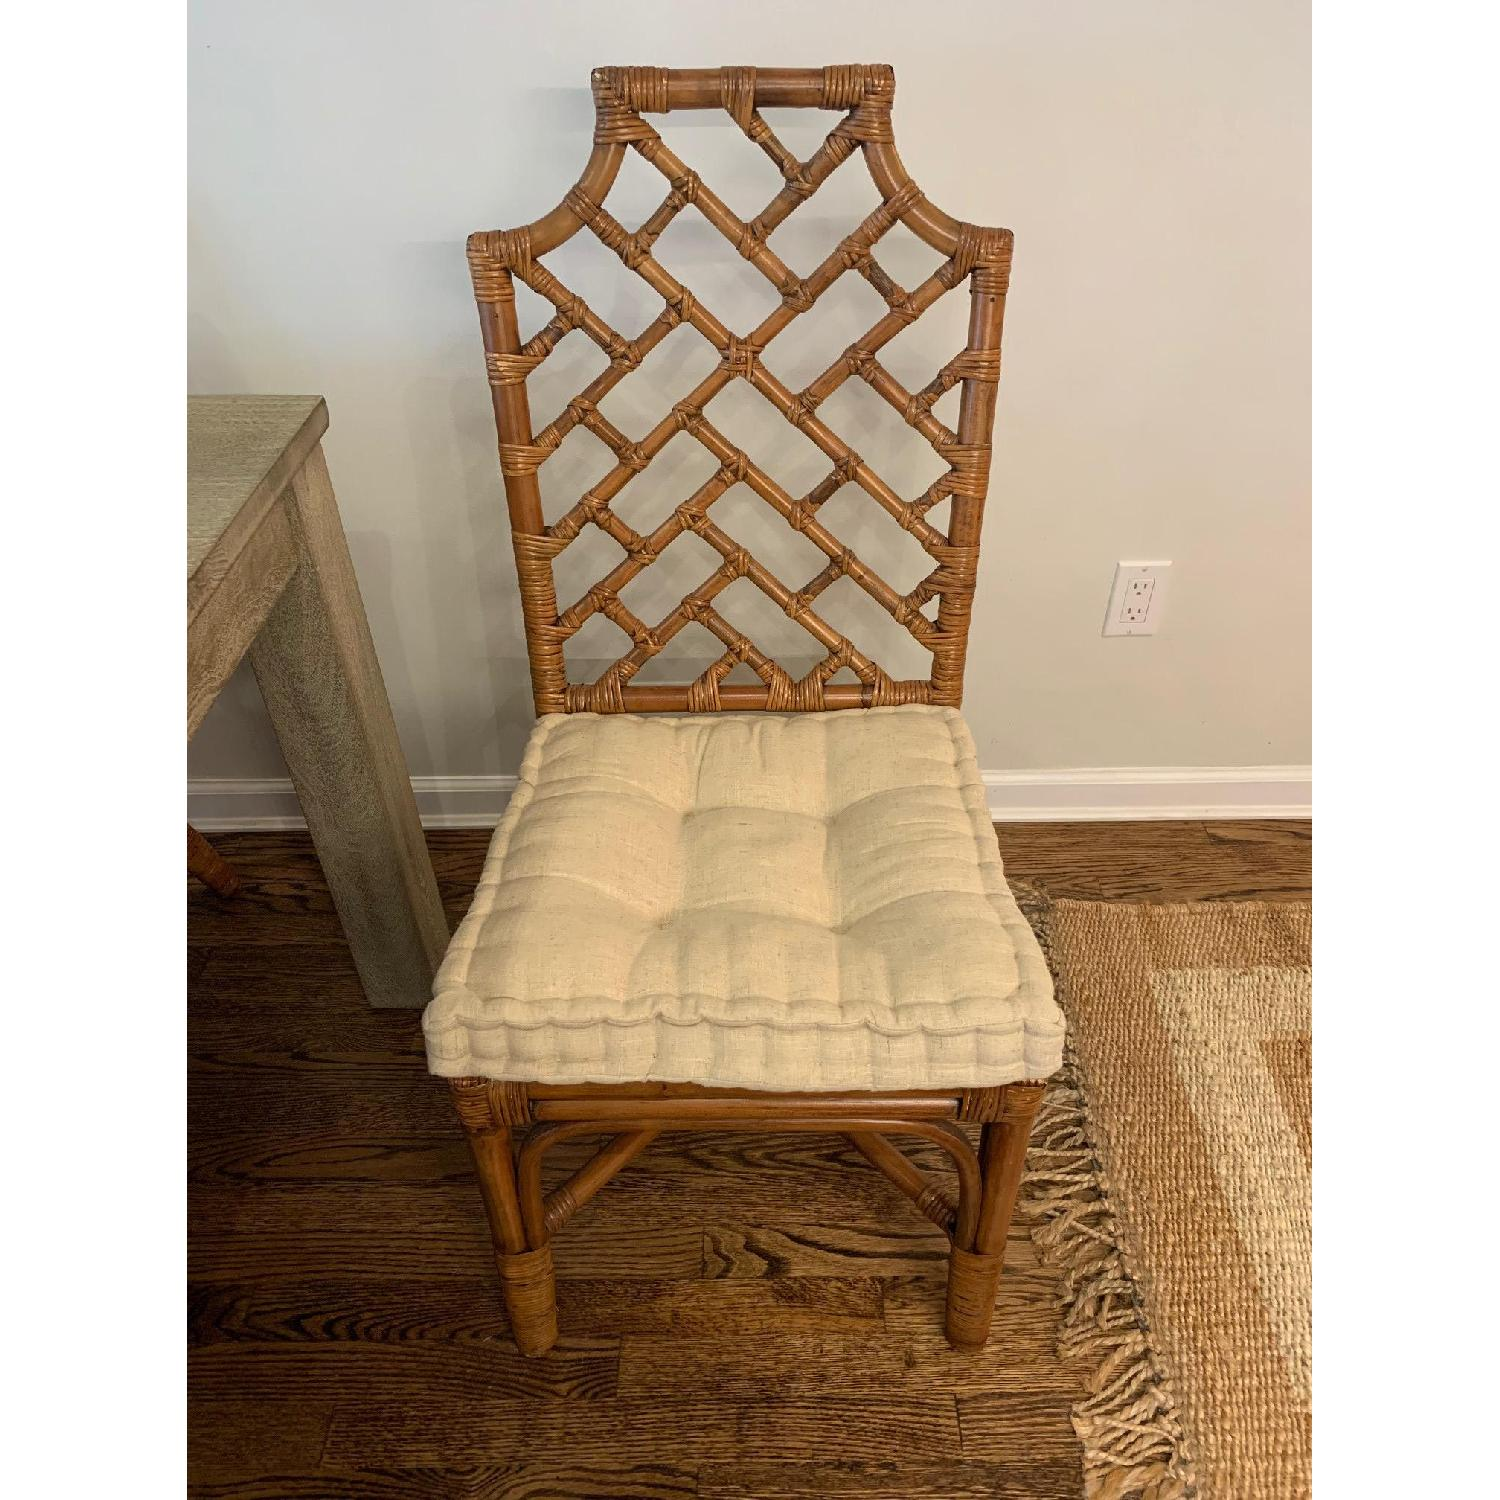 Pier 1 Rattan Dining Chairs - image-2